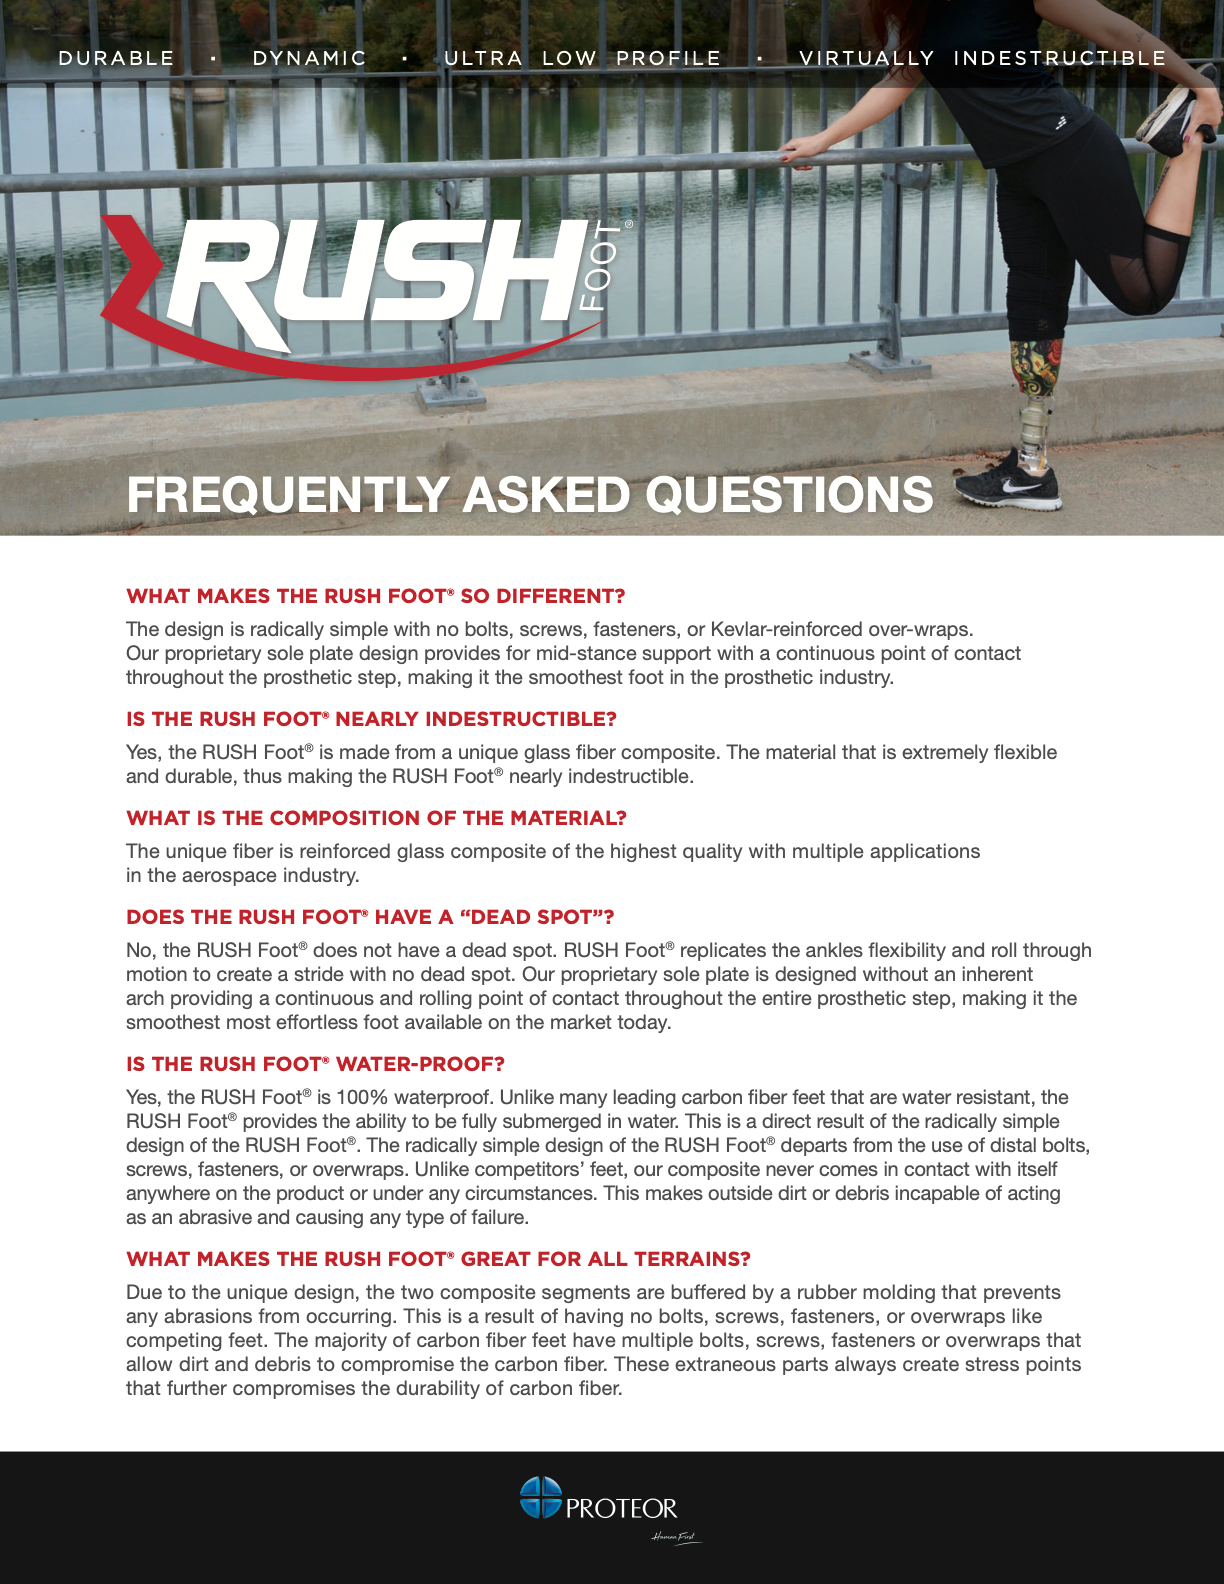 RUSH Frequently Asked Questions